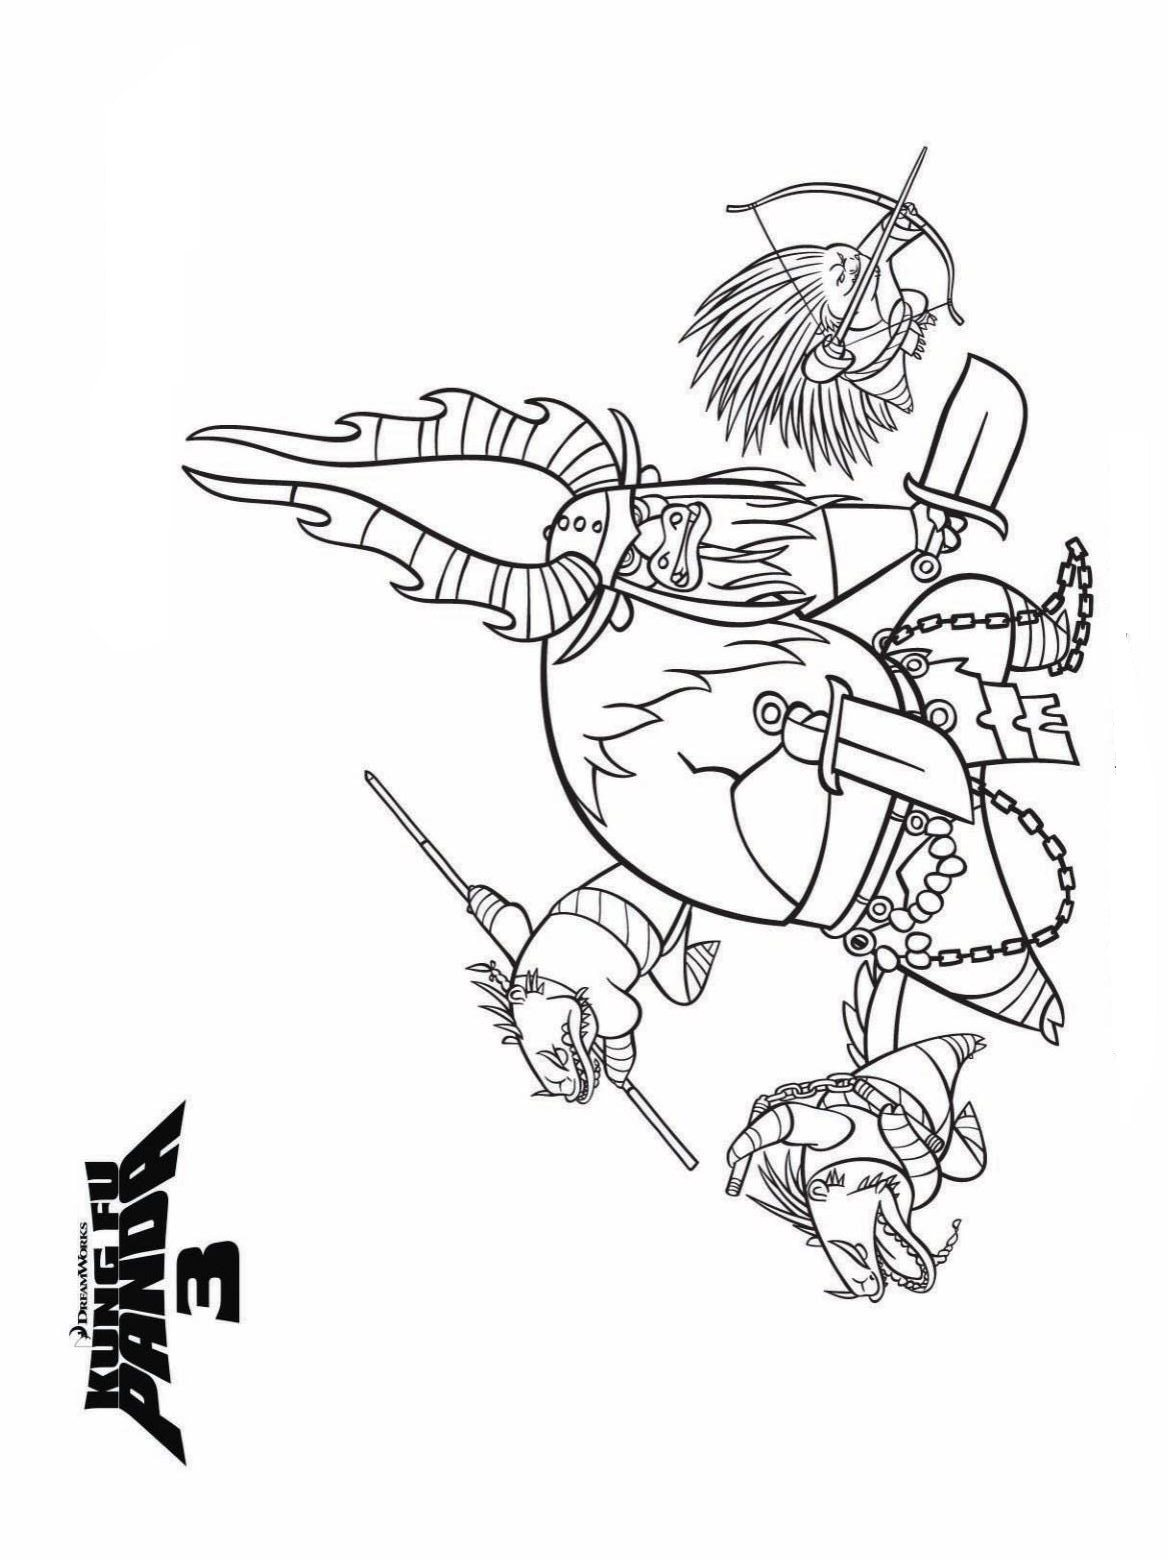 Printable coloring pages kung fu panda - 7 Kung Fu Panda 3 Coloring Pages